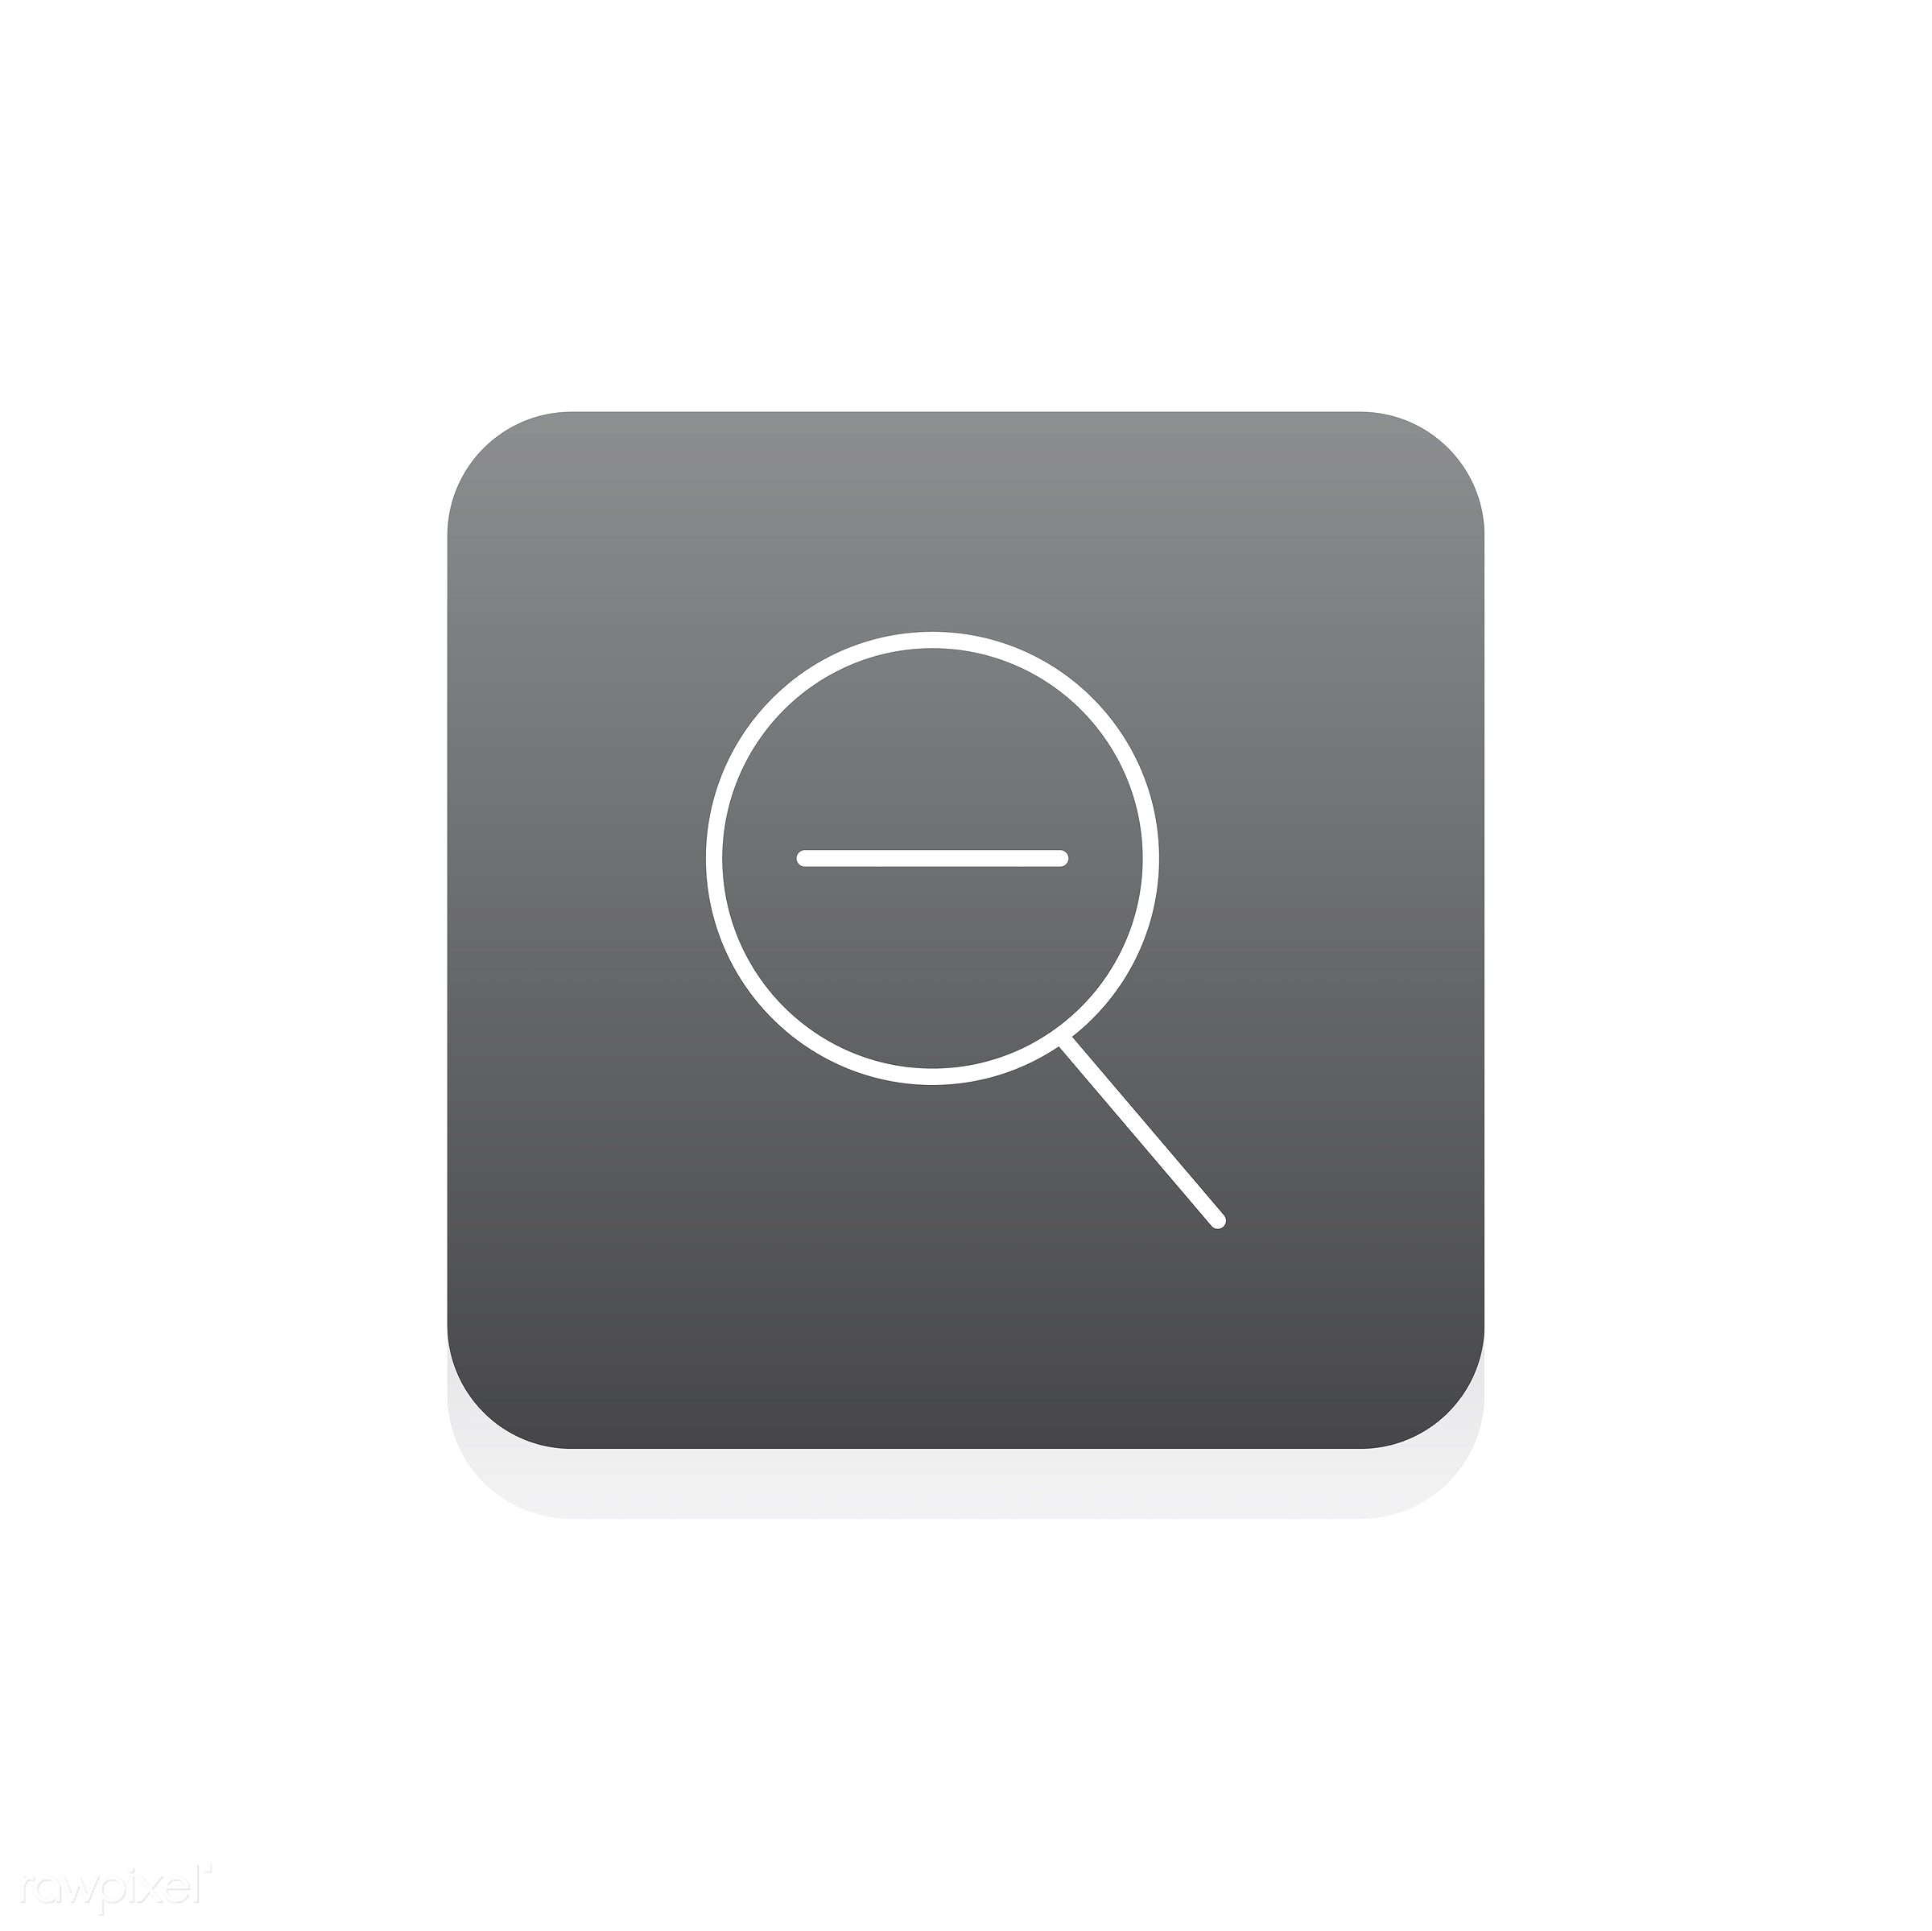 Vector of magnifying glass icon - design, flat, graphic, icon, illustration, isolated, layout, style, symbol, vector, web,...